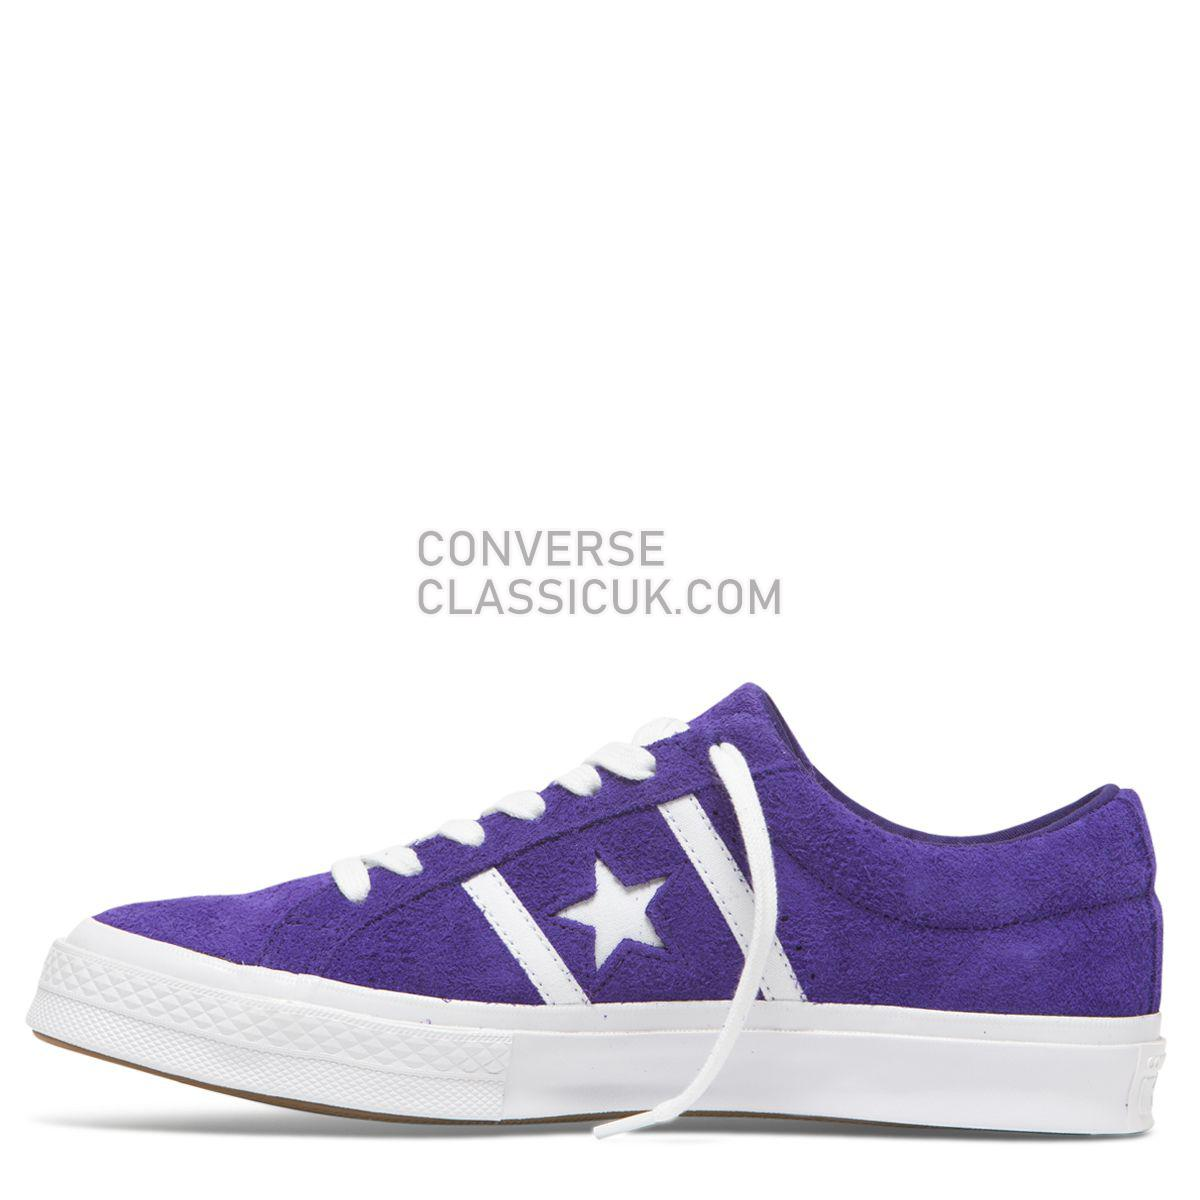 Converse One Star Academy Low Top Court Purple/White Mens Womens Unisex 164391 Court Purple/White/White Shoes